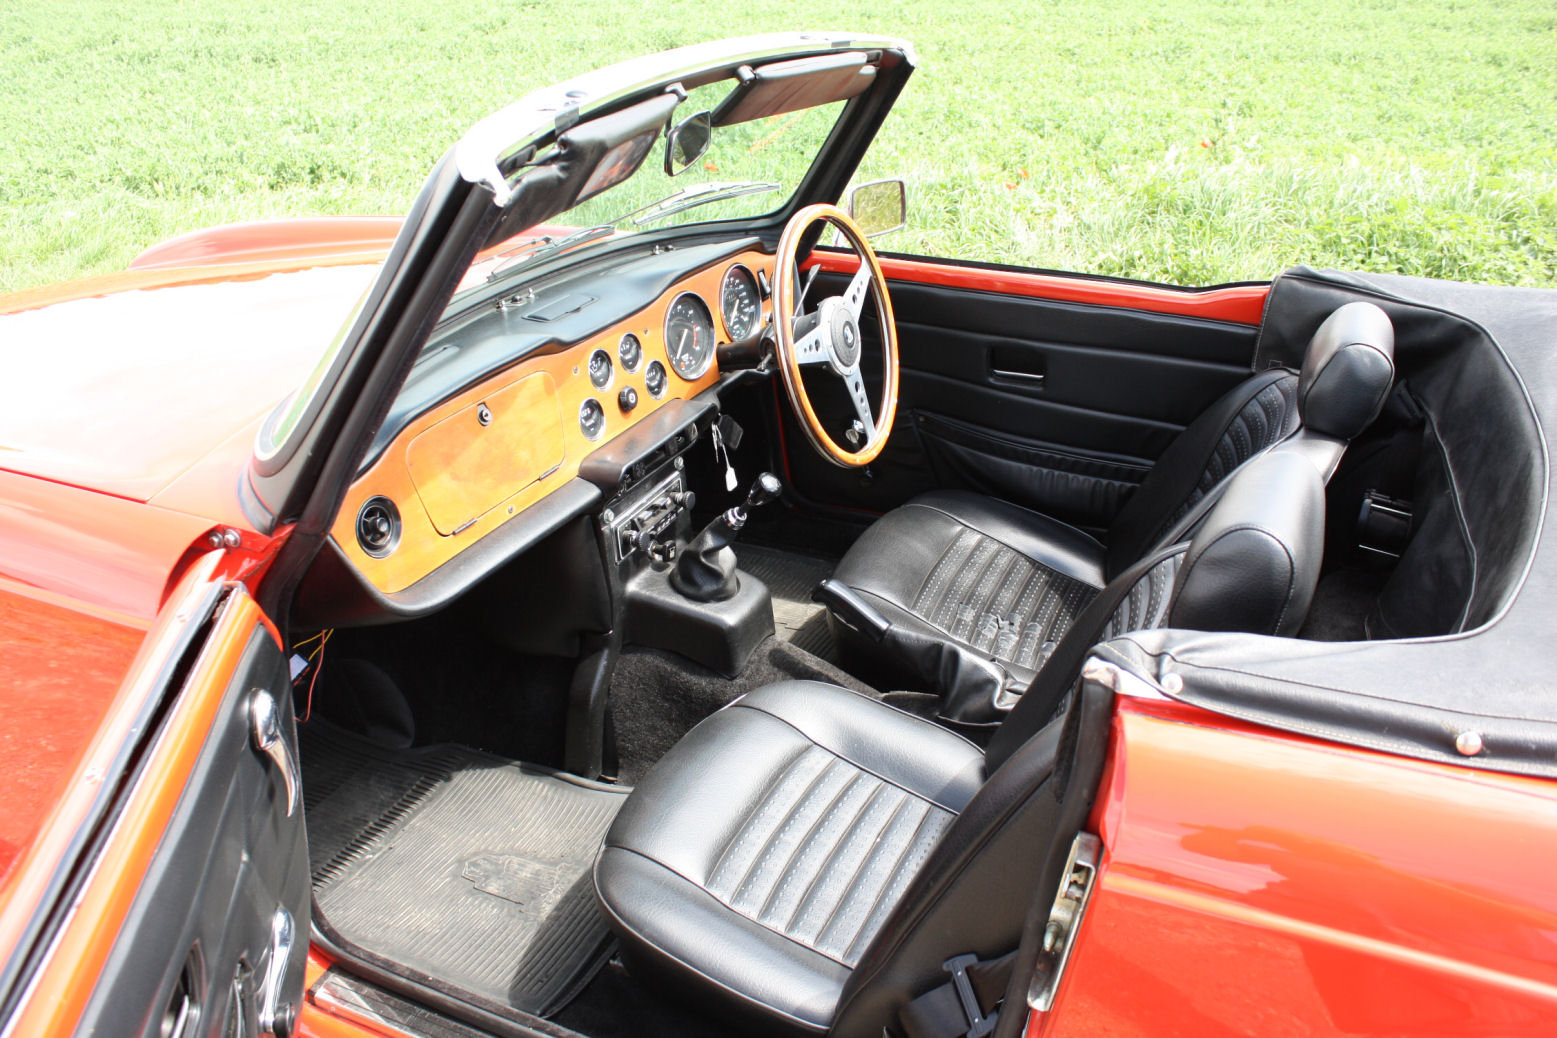 1973 1974 TRIUMPH TR6 GENUINE UK RHD CAR WITH OVERDRIVE SOLD (picture 4 of 6)